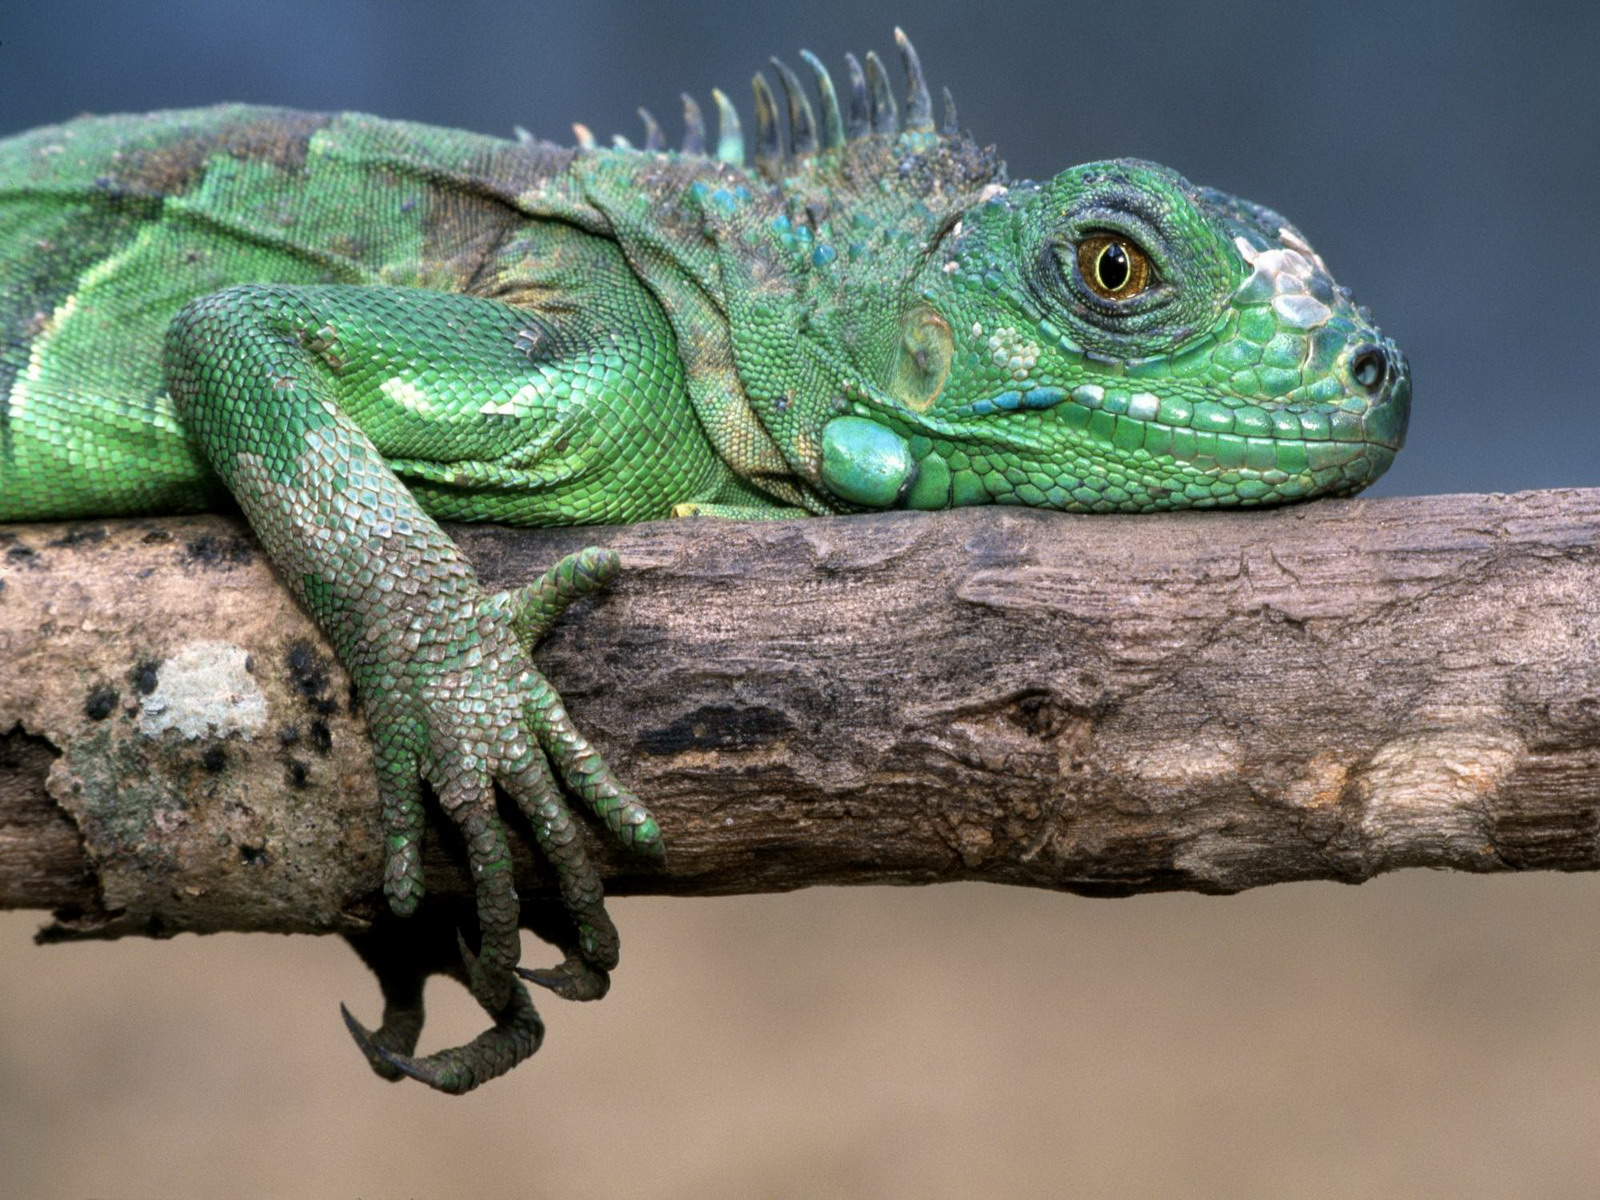 Iguana HD Wallpapers images High Definition   All HD Wallpapers 1600x1200